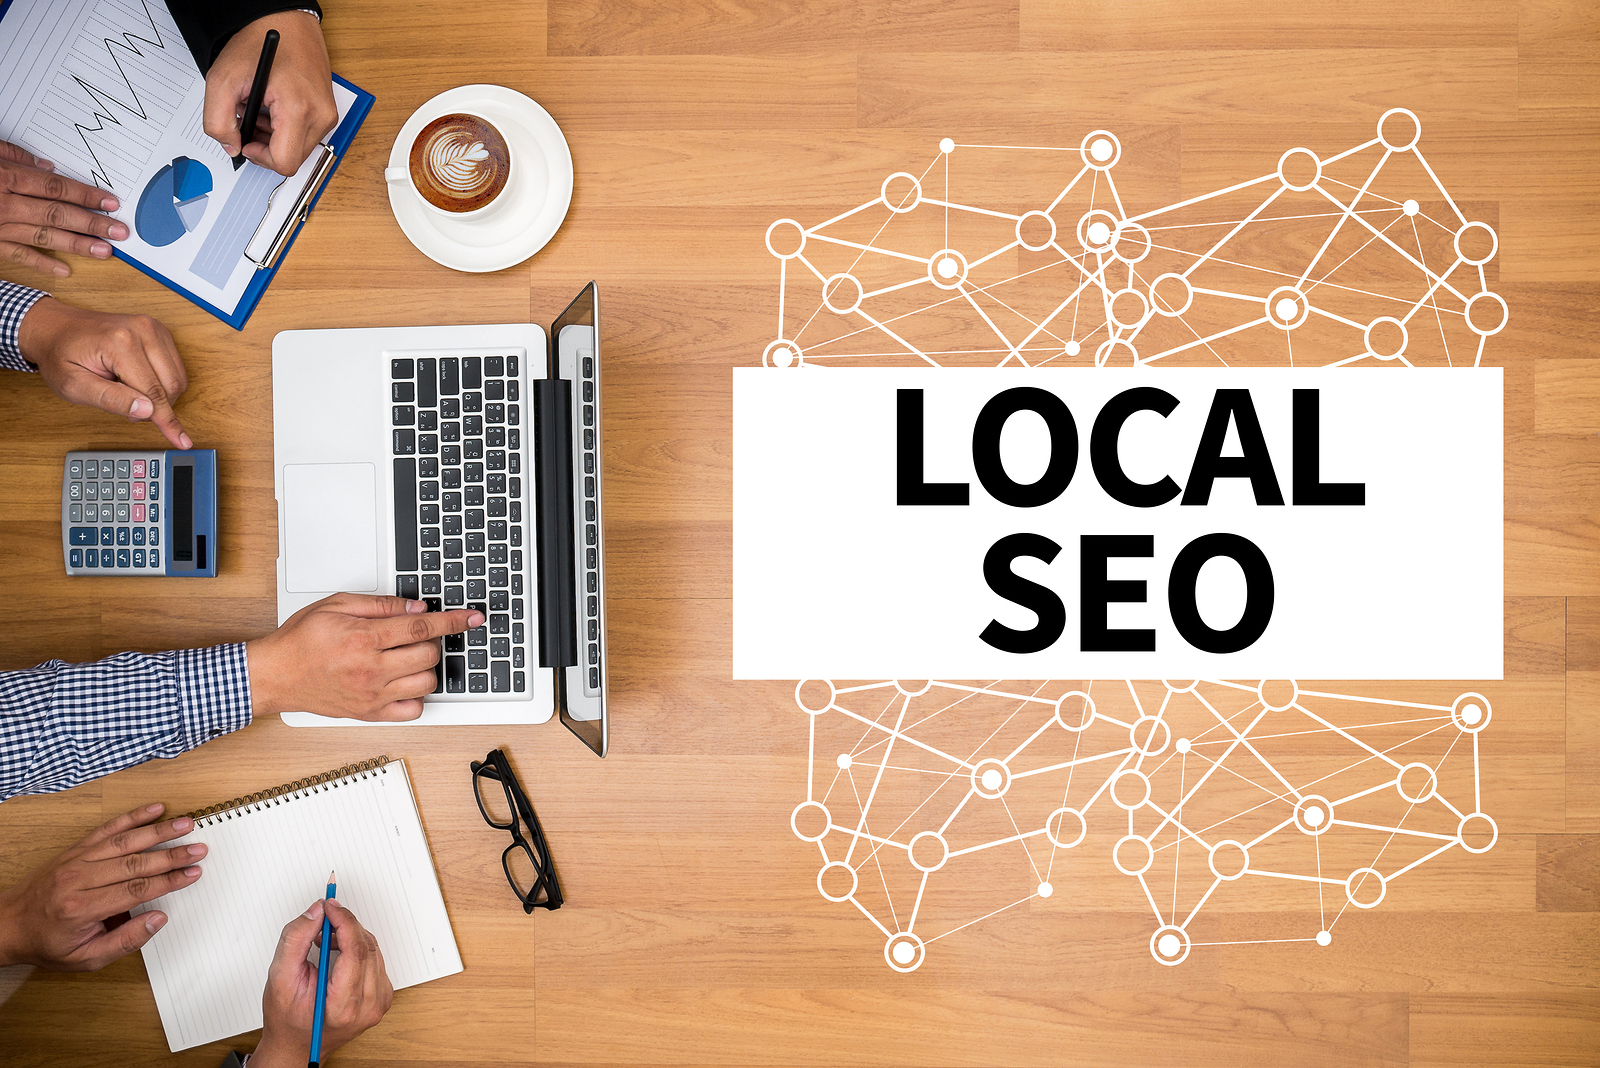 6 Helpful Tips to Start Your Local SEO Strategies